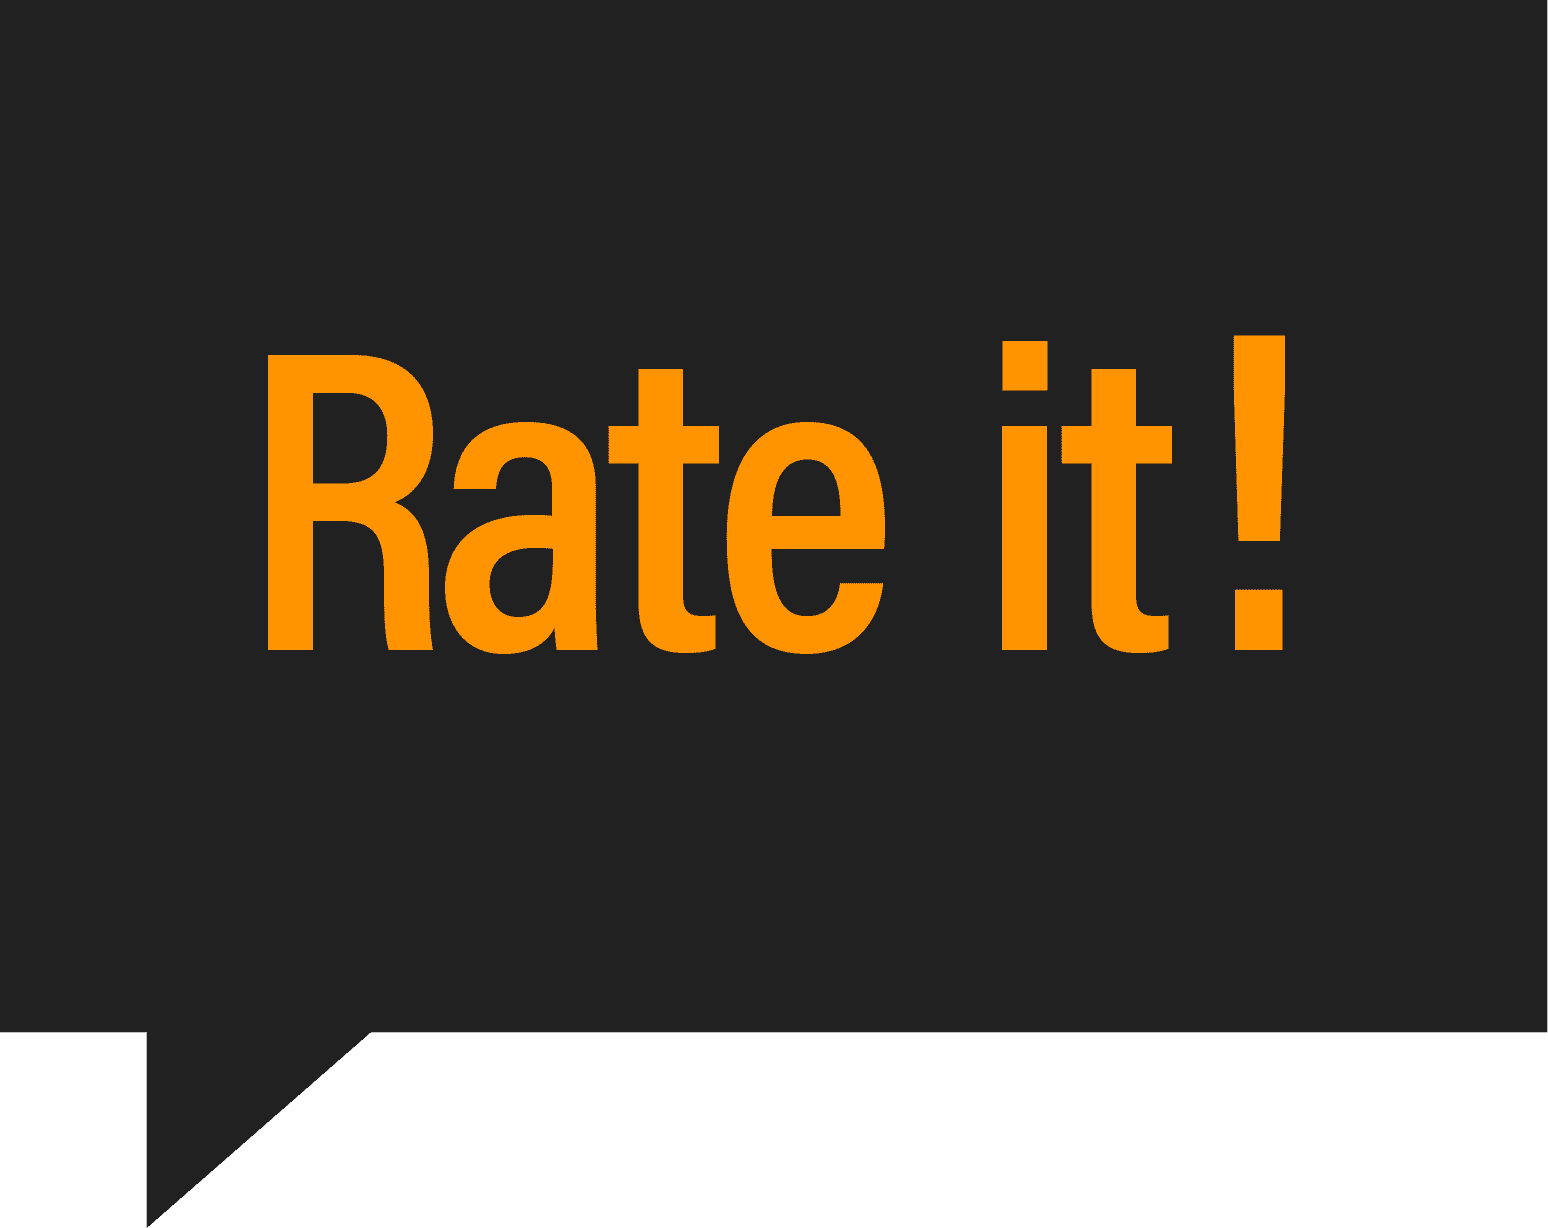 Rate it! in orange text, black background